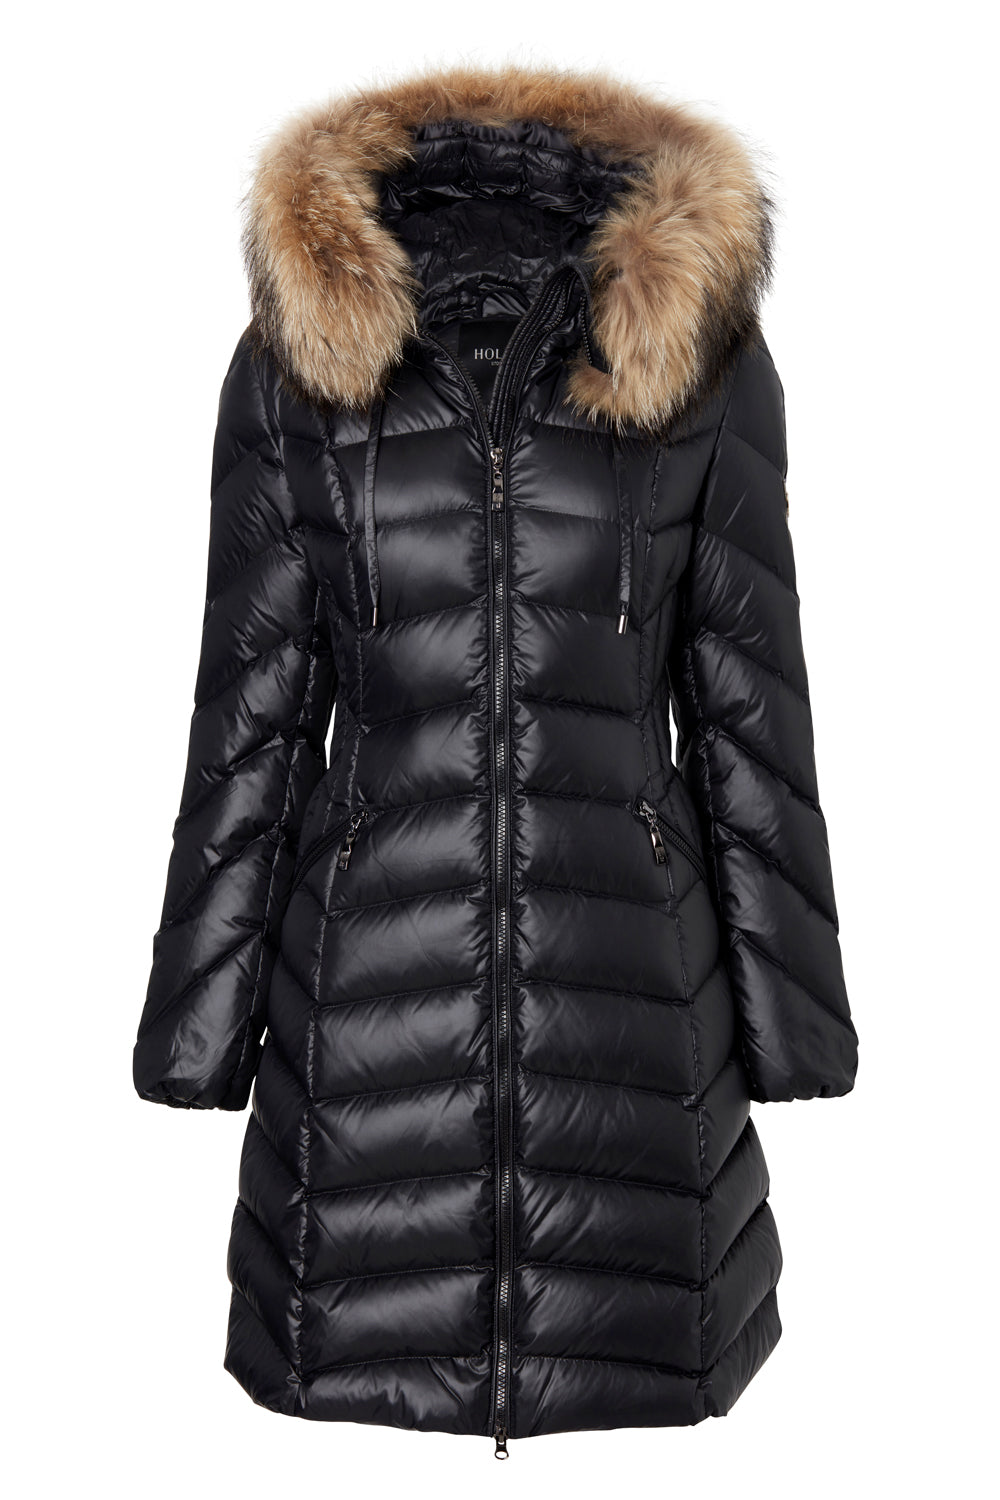 WILD CAT BLACK/NATURE FAUX FUR